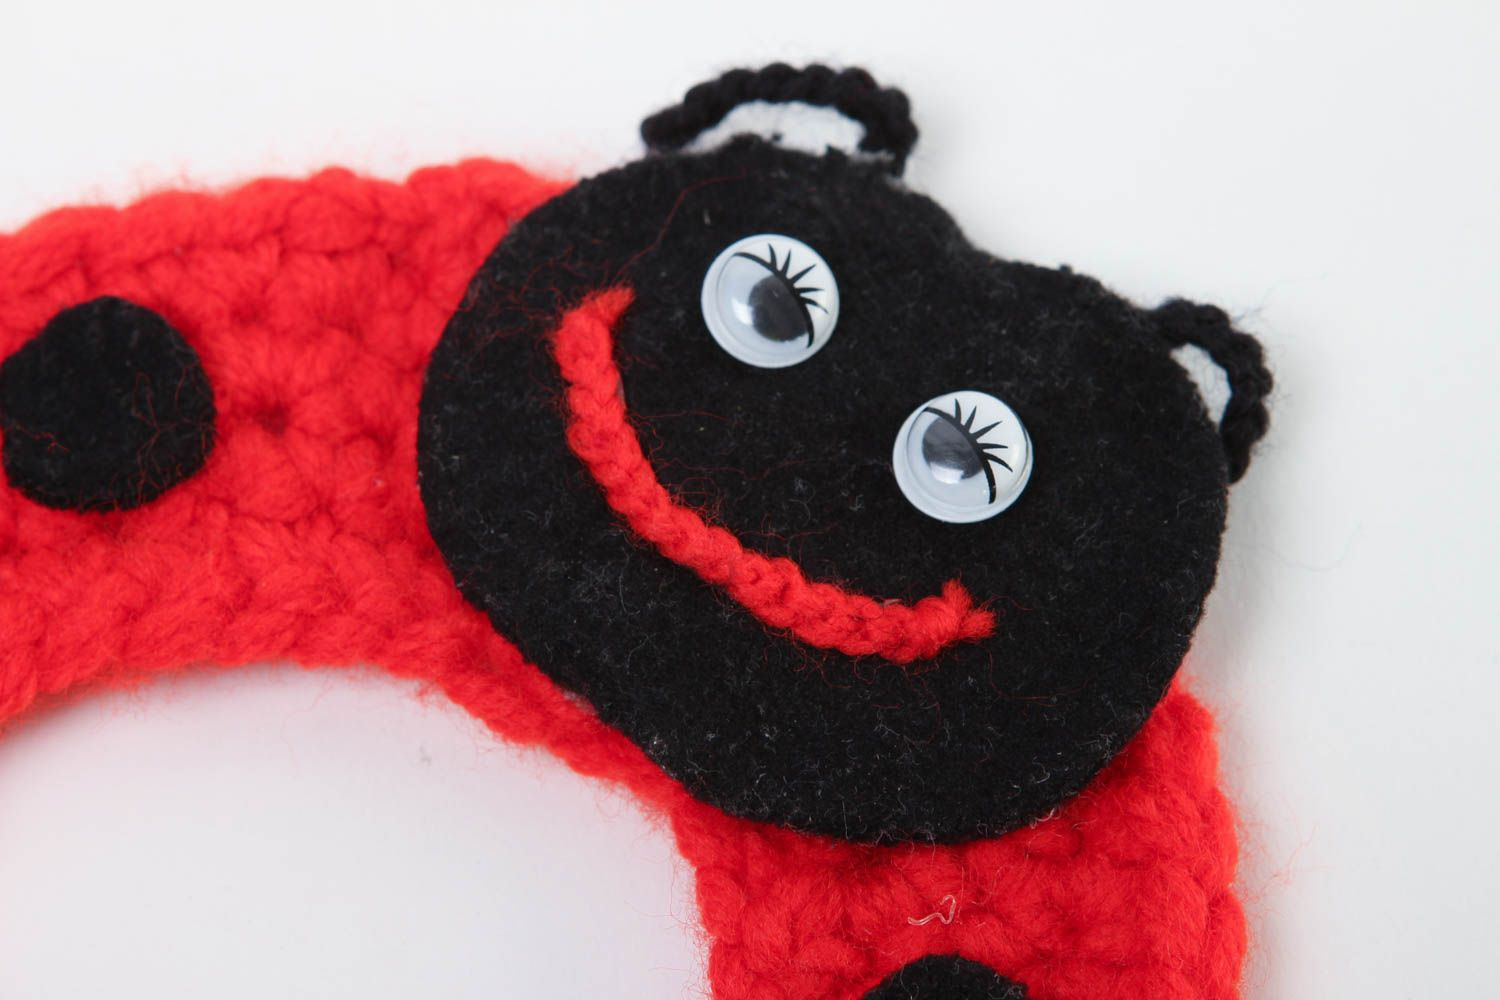 сamera accessoires Soft toy handmade soft toy unique toys for camera baby toys kids accessories - MADEheart.com